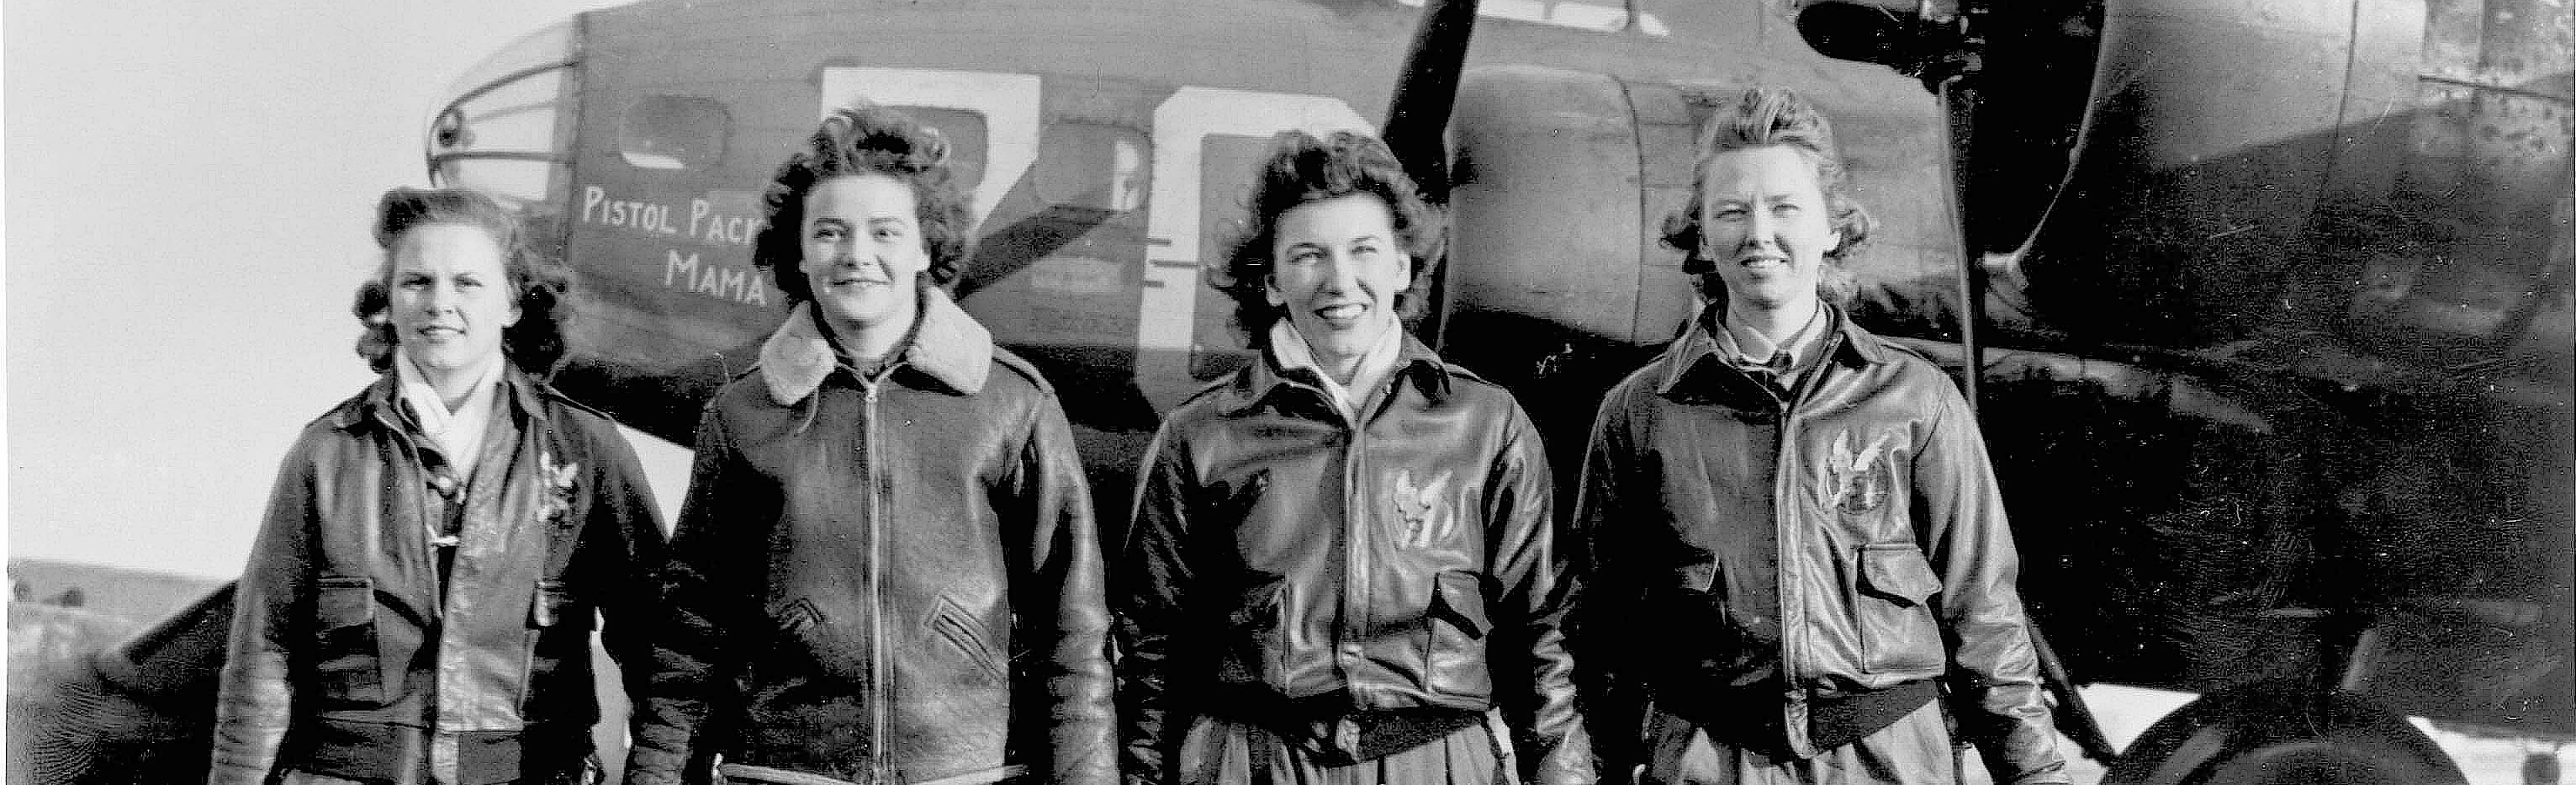 Female pilots of the WASP program.